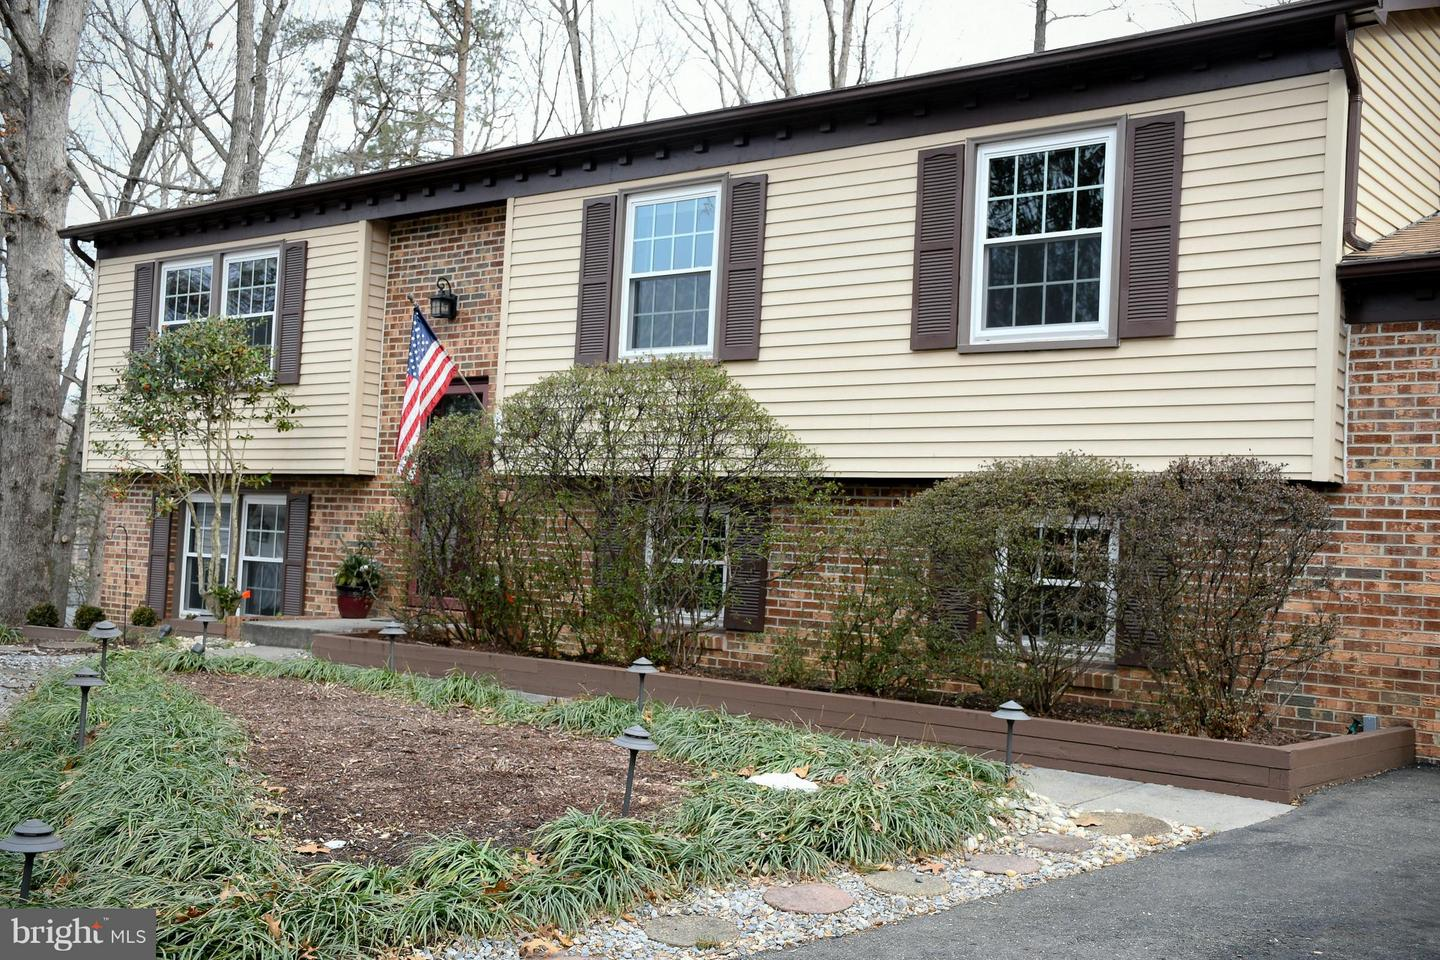 Additional photo for property listing at 11 Pinecrest Ct 11 Pinecrest Ct Stafford, Virginia 22554 United States